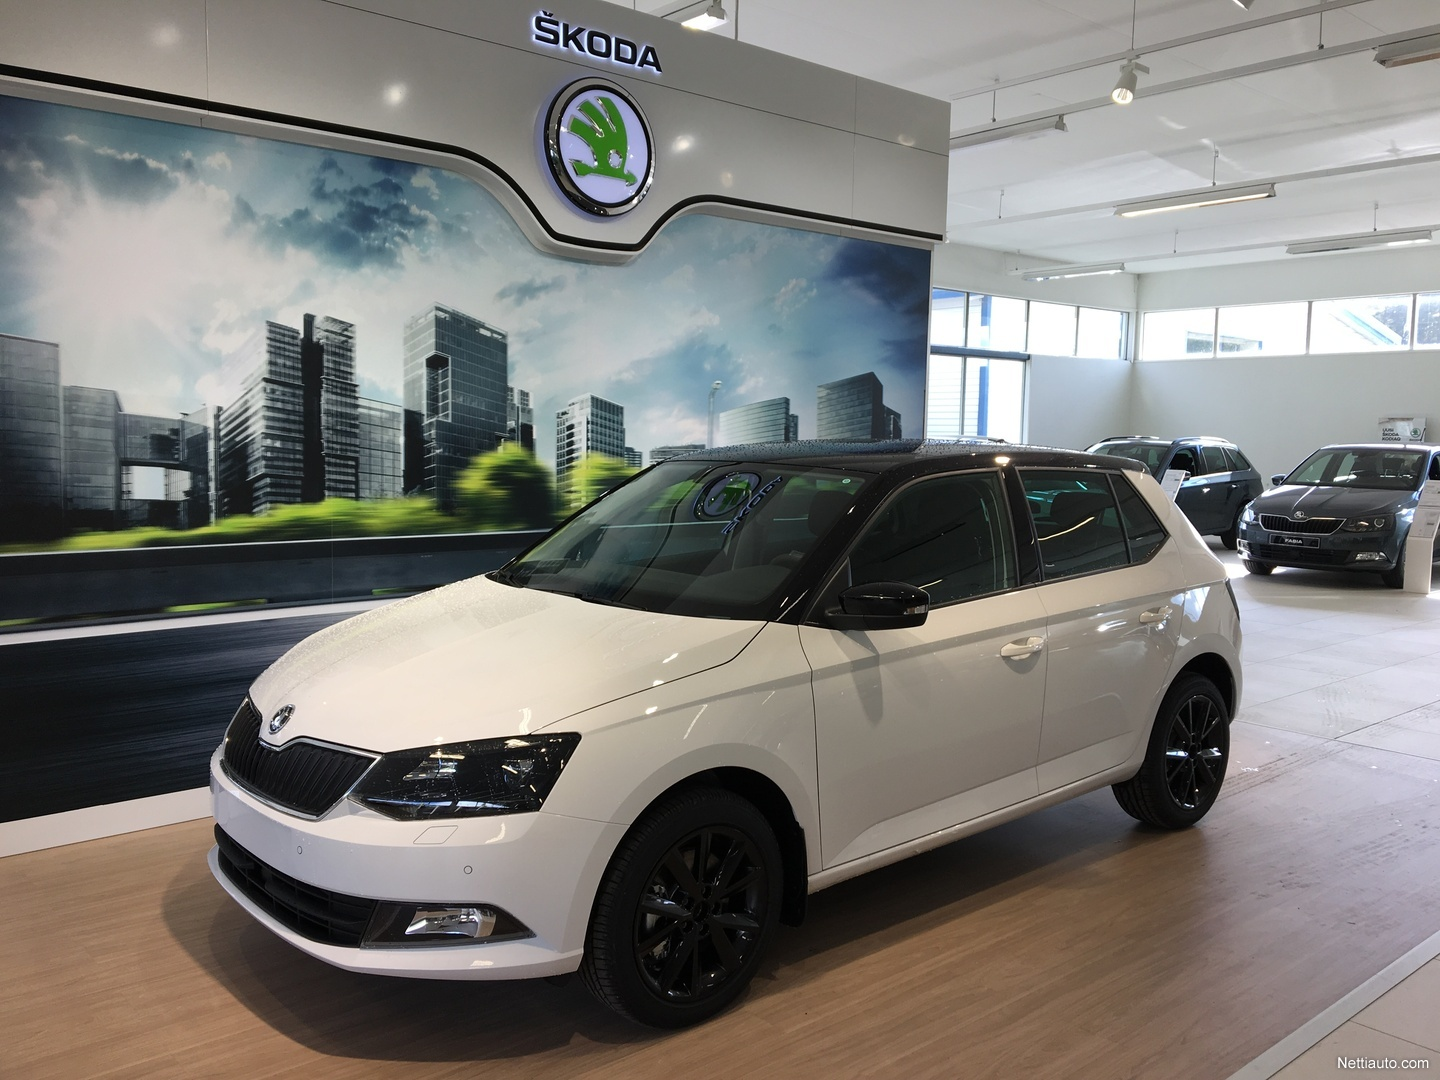 skoda fabia 1 0 tsi 110 style hatchback 2018 used vehicle nettiauto. Black Bedroom Furniture Sets. Home Design Ideas